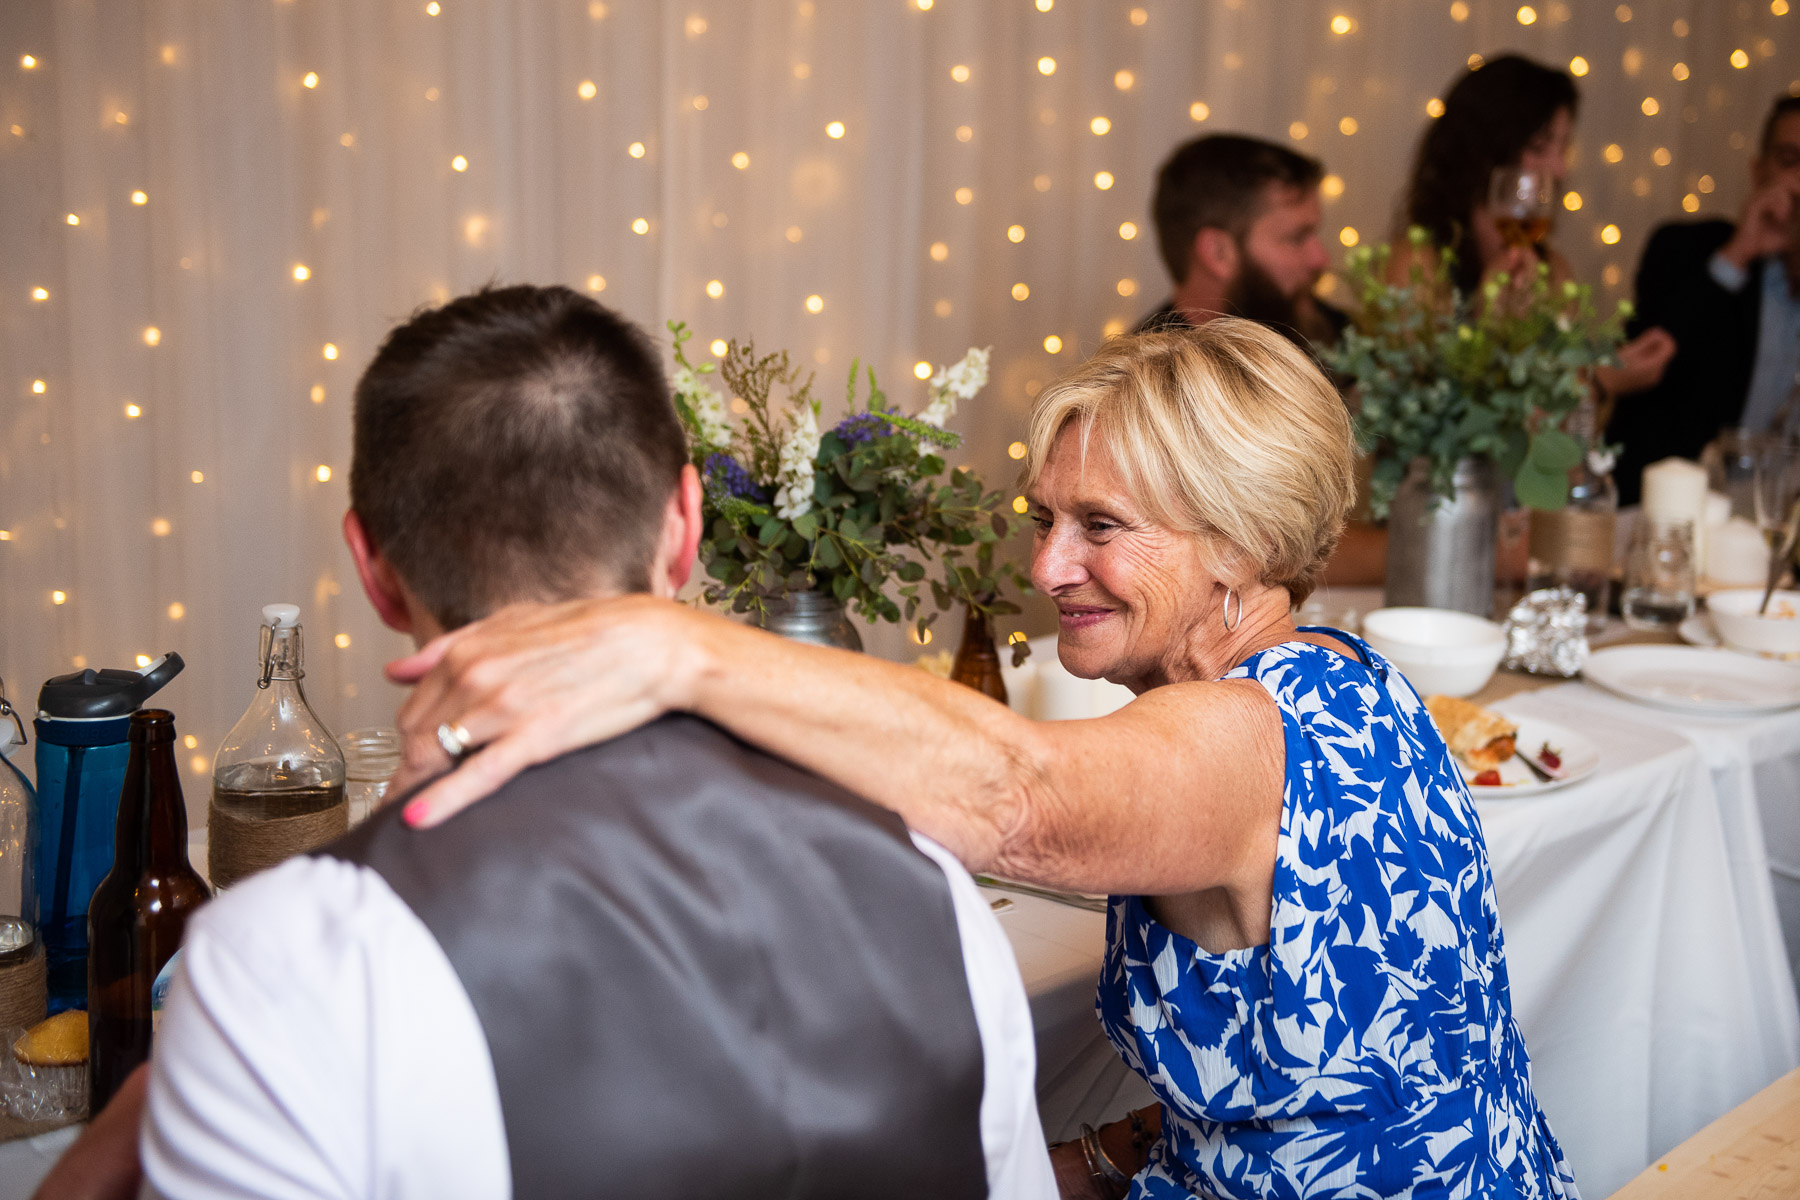 Garage Elopement Reception Party Photographer   the groom's mom shares a sweet moment with him at dinner after their wedding ceremony